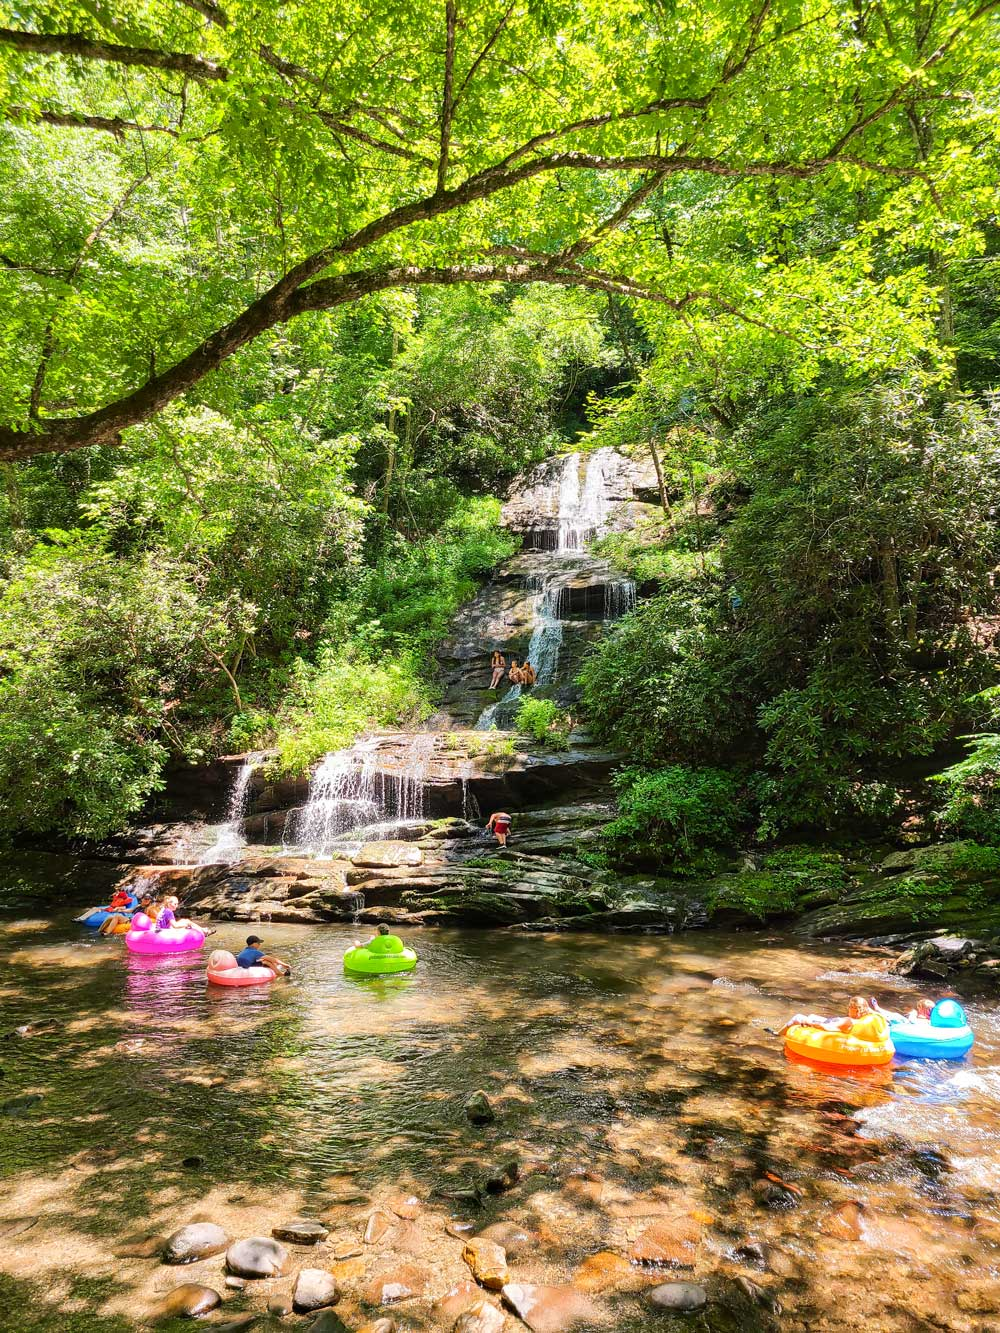 Best Things to Do in Bryson City NC with Kids - Deep Creek River and Tubing   Things to do in Bryson City NC by popular Florida travel blog, Fresh Mommy Blog: image of a family tubing on Deep Creek River.